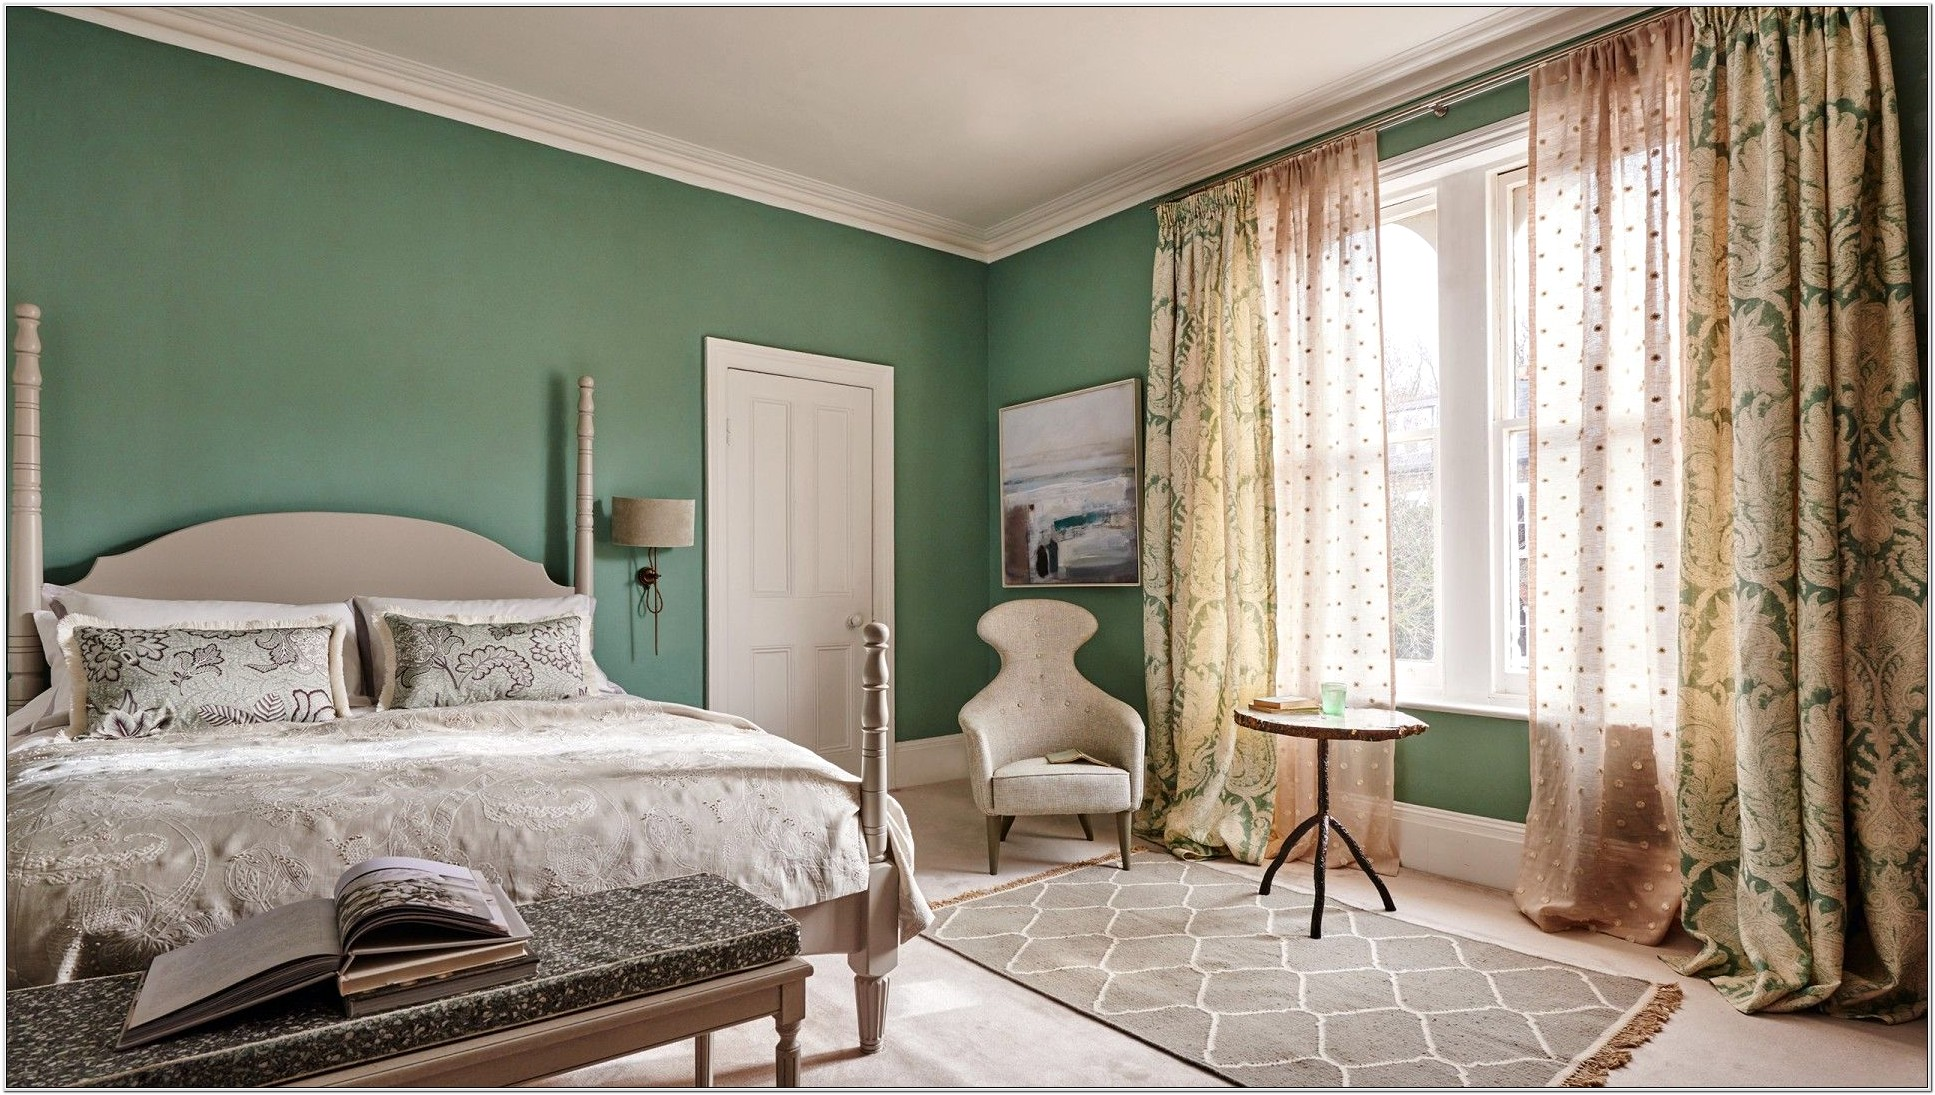 Bedroom Decor With Sage Green Walls